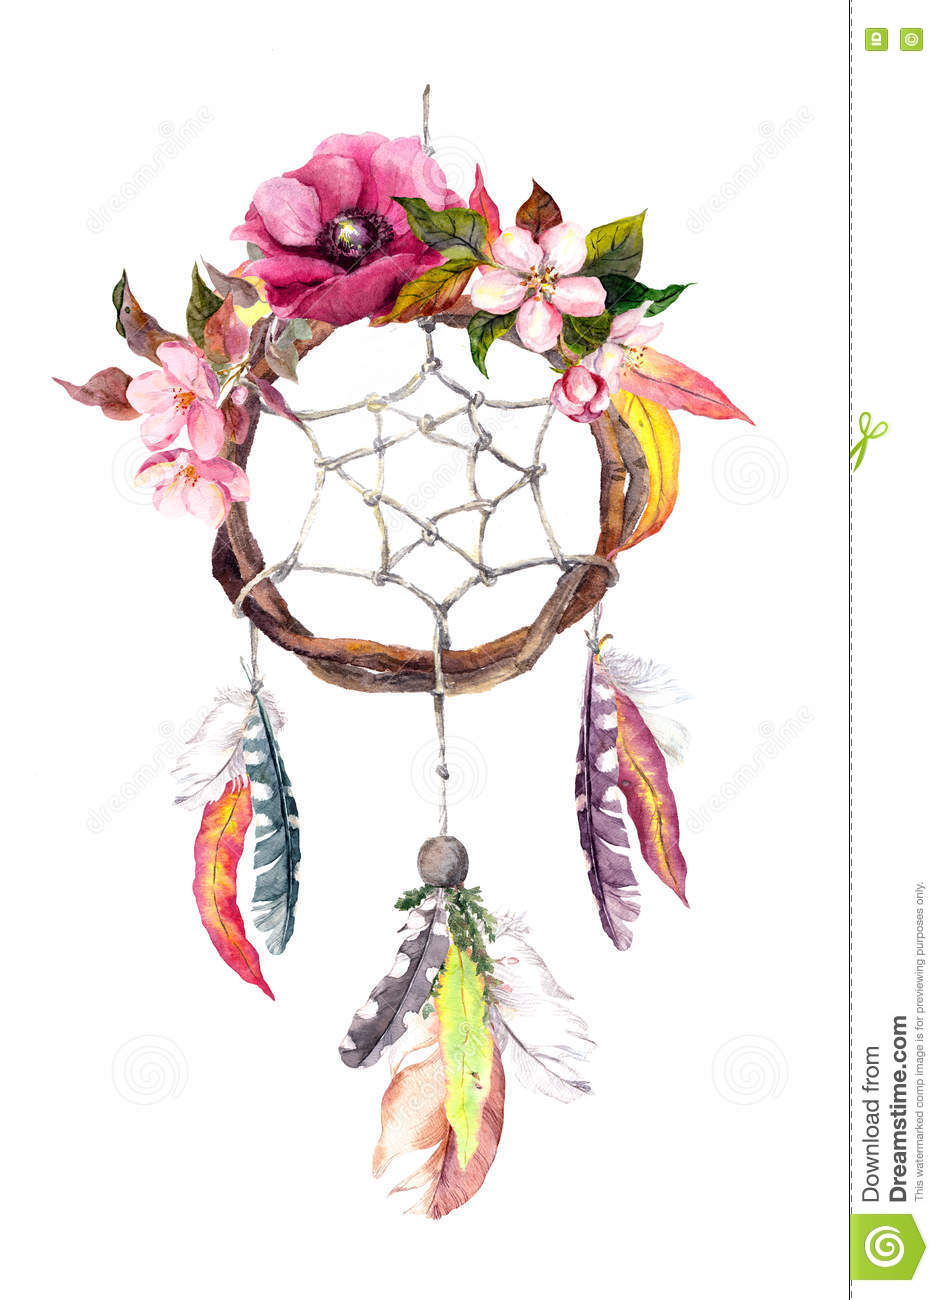 Dream Catcher Feathers Leaves Flowers Autumn